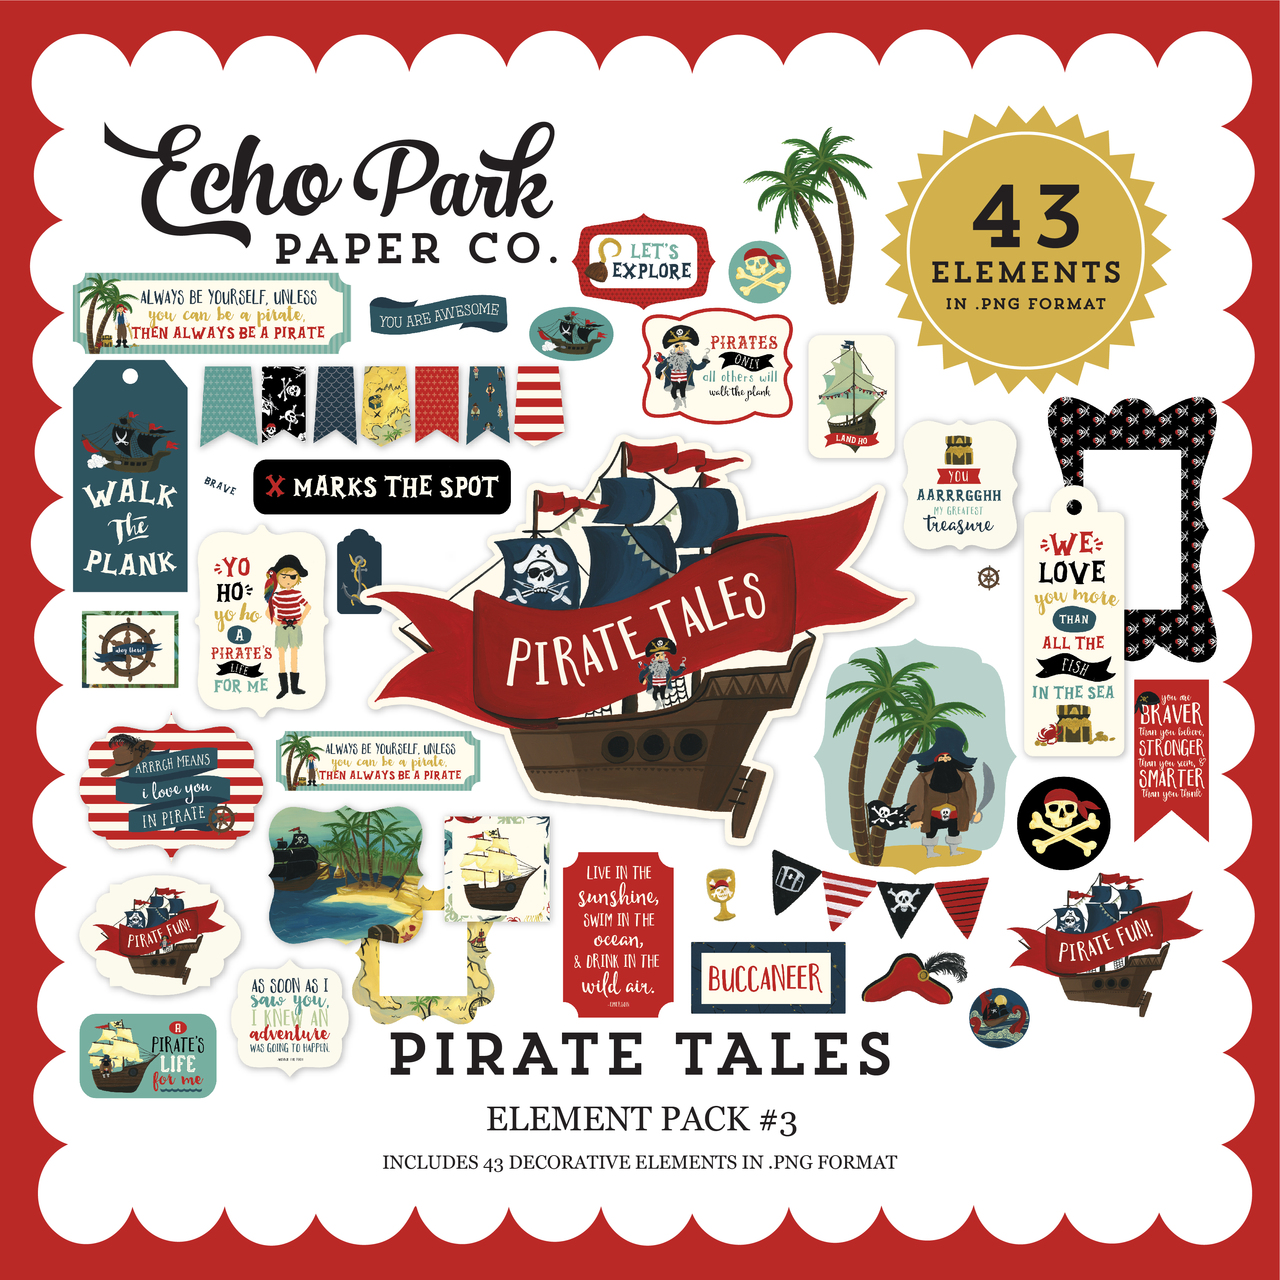 Pirate Tales Element Pack #3